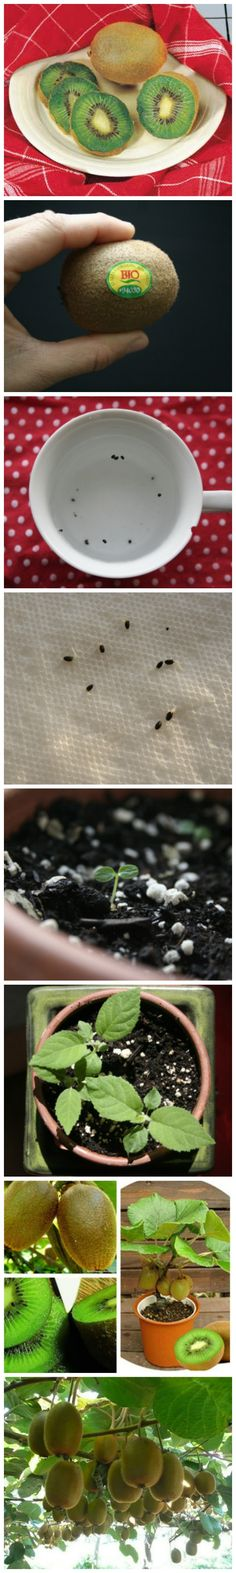 How To Grow A Kiwi Plant From Seed- DIY